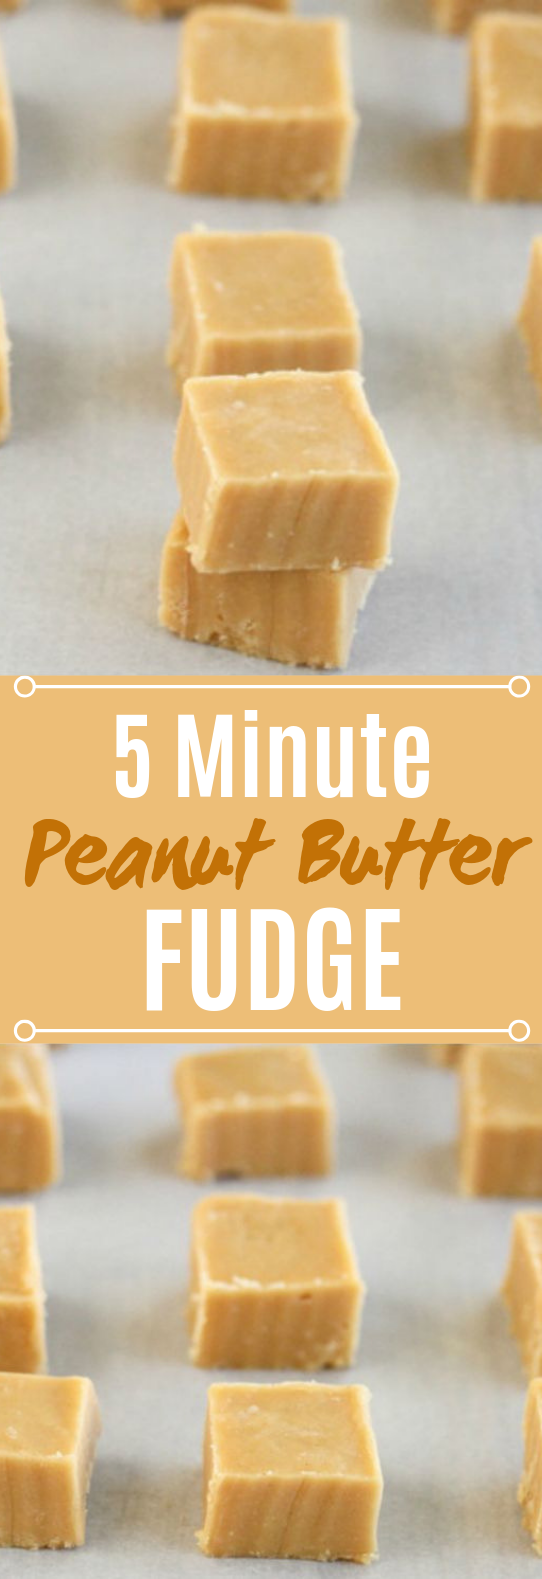 Peanut Butter Fudge #desserts #easy